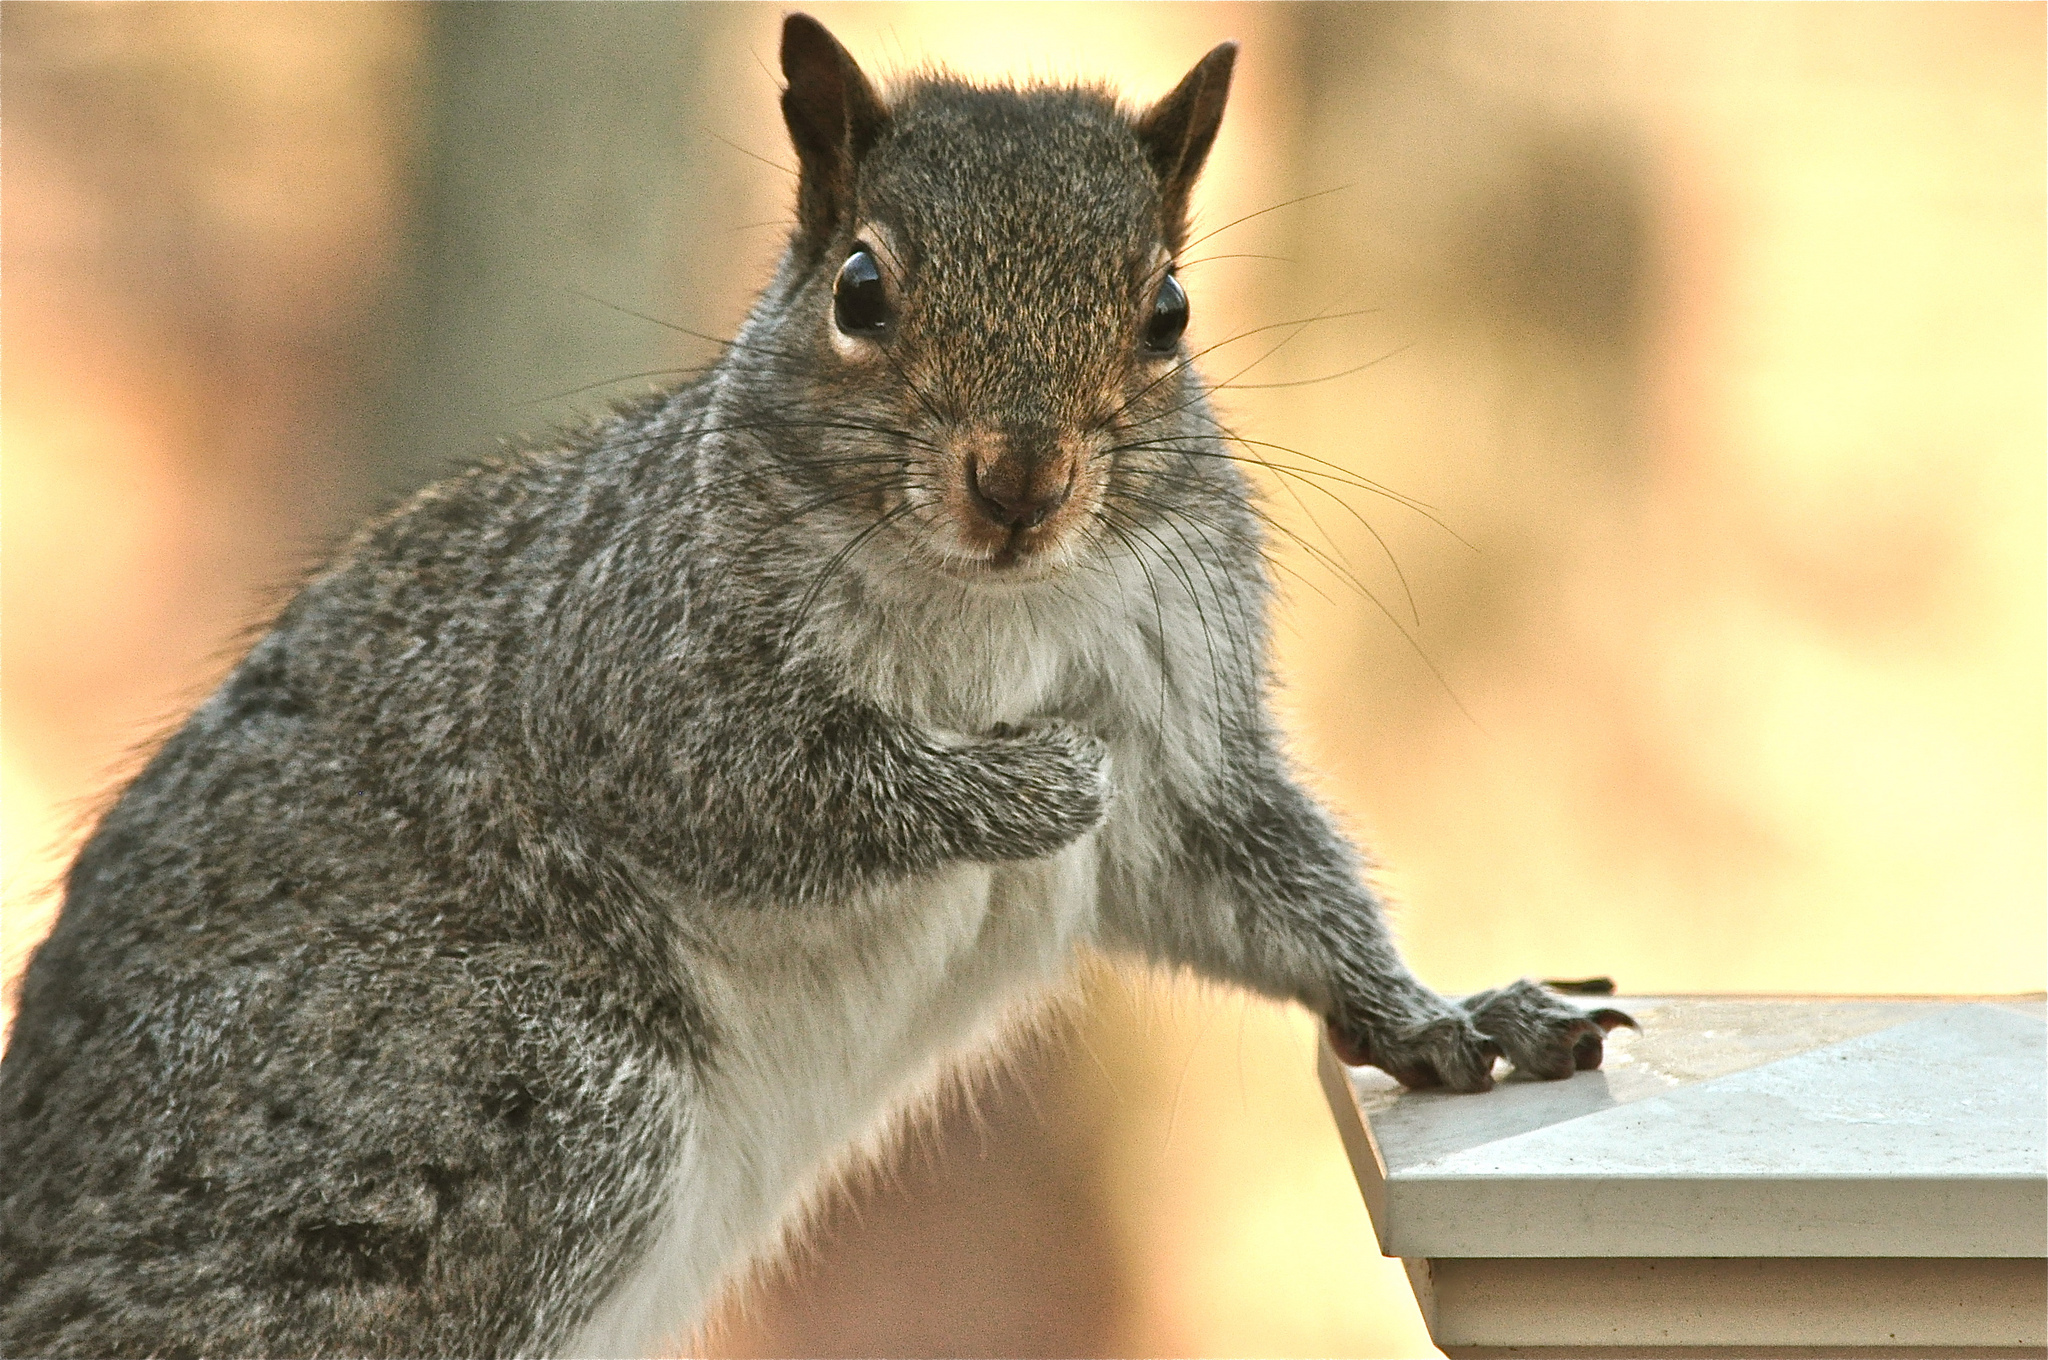 109435 download wallpaper Animals, Squirrel, Sight, Opinion, Paw, Animal screensavers and pictures for free